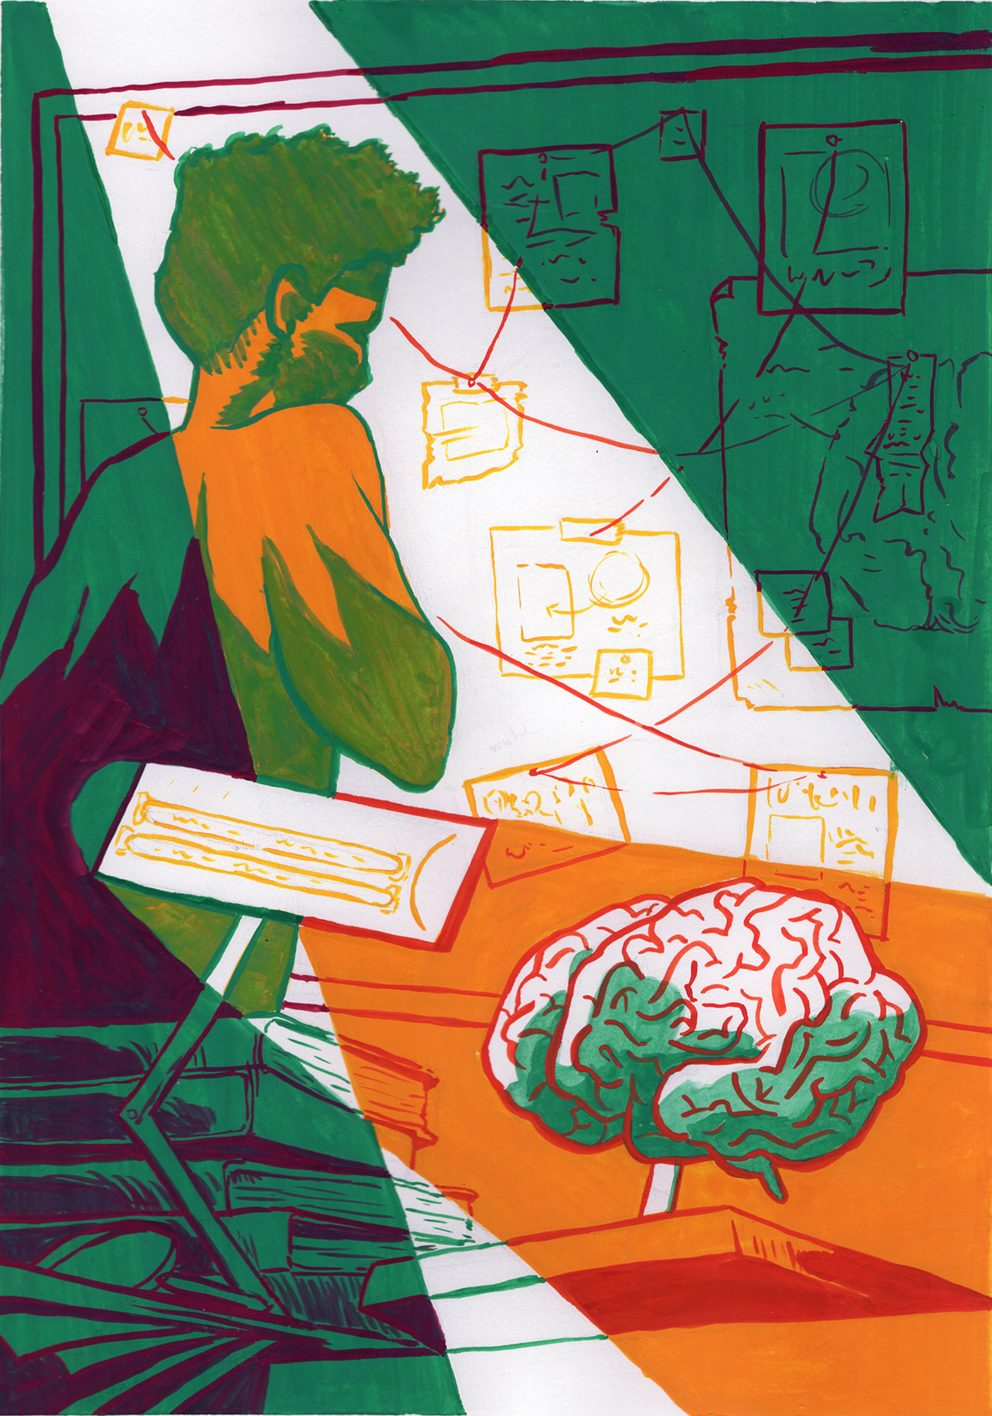 Gouache editorial illustration. An investigator looks at a pinboard. The foreground spotlights a model of the brain.